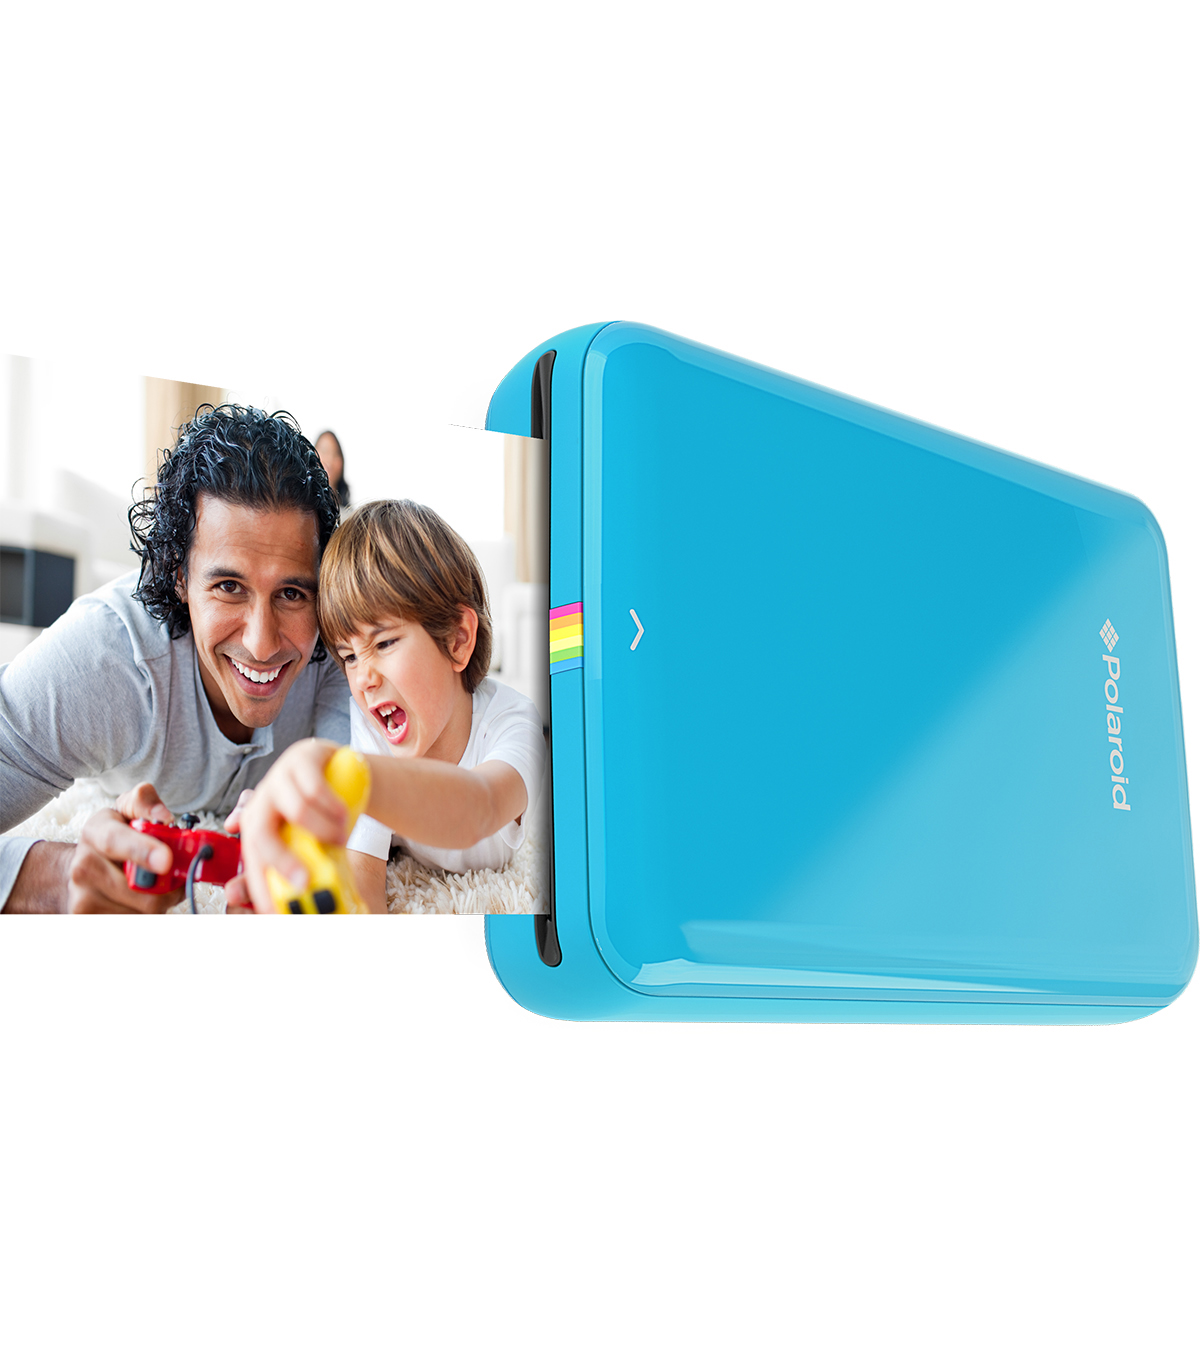 Polaroid Snap Zip Mobile Printer-Blue